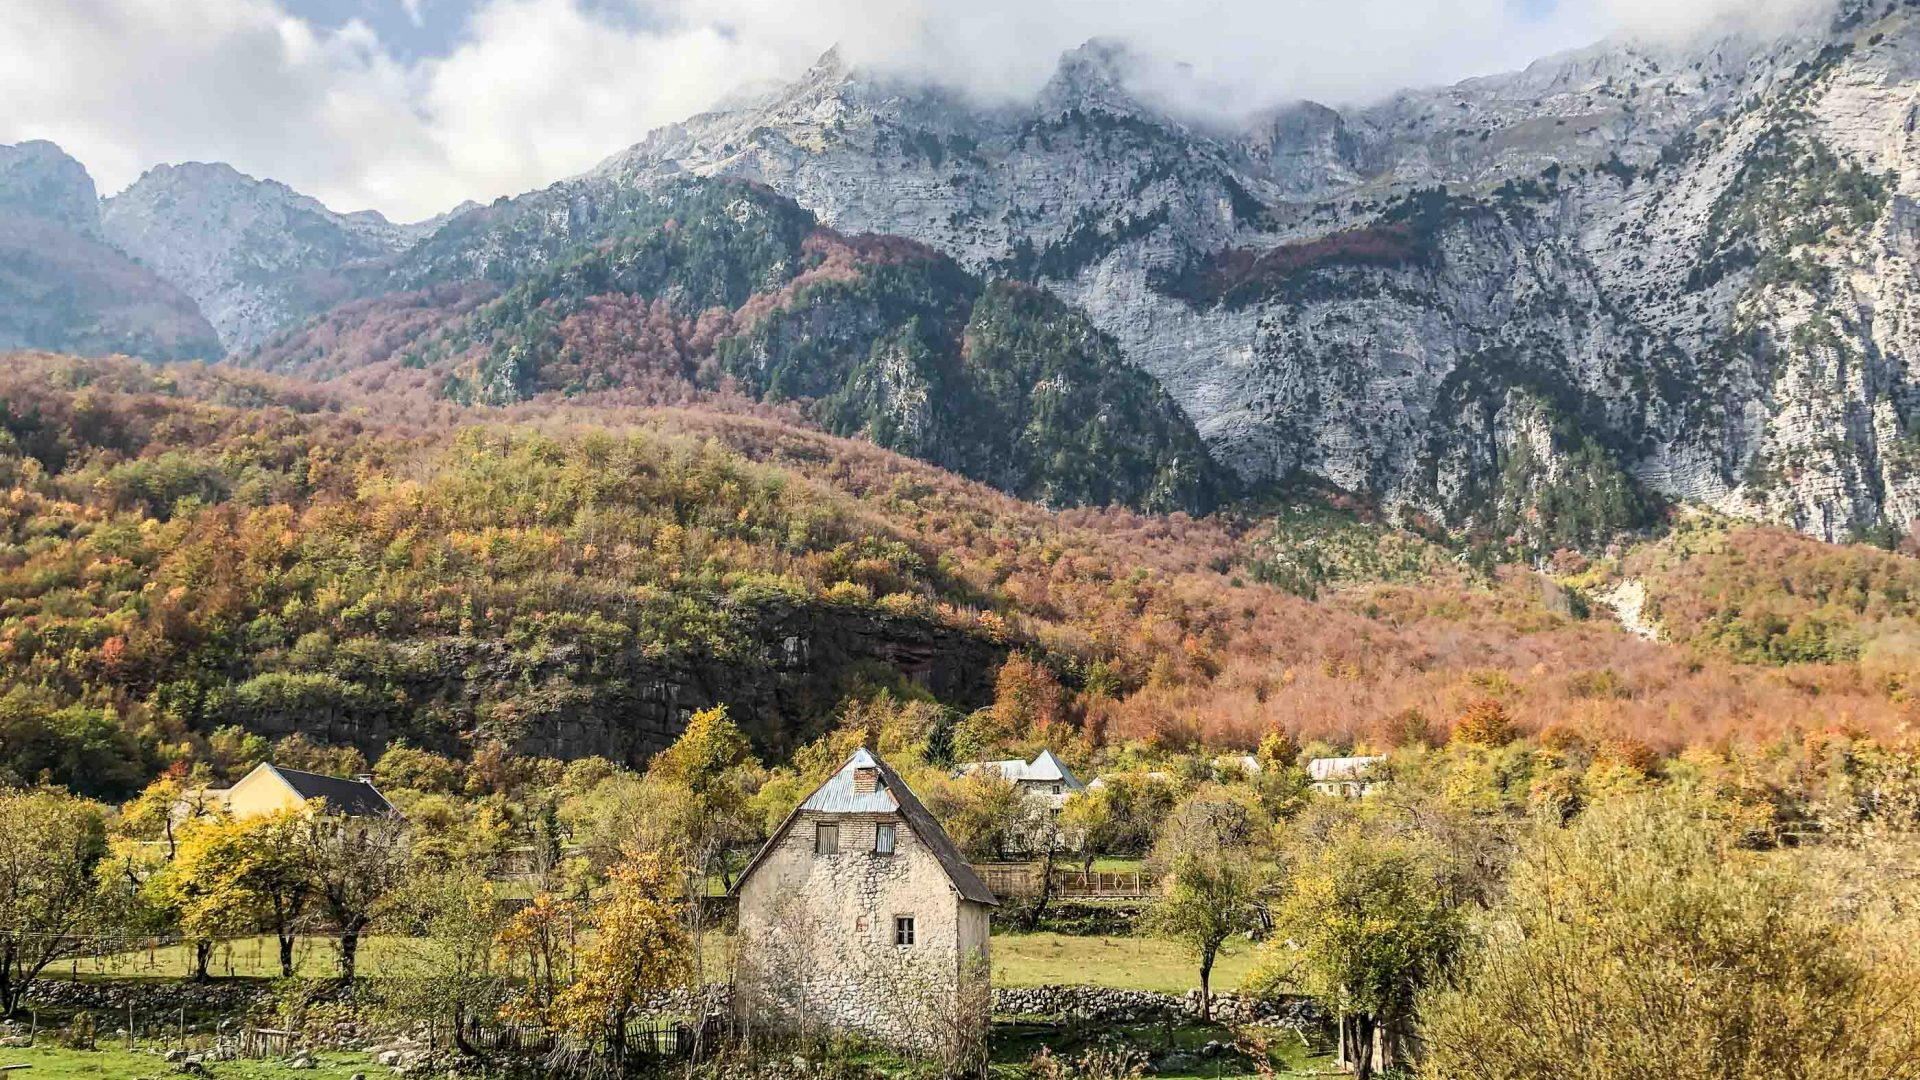 A house in the Albanian village of Theth.